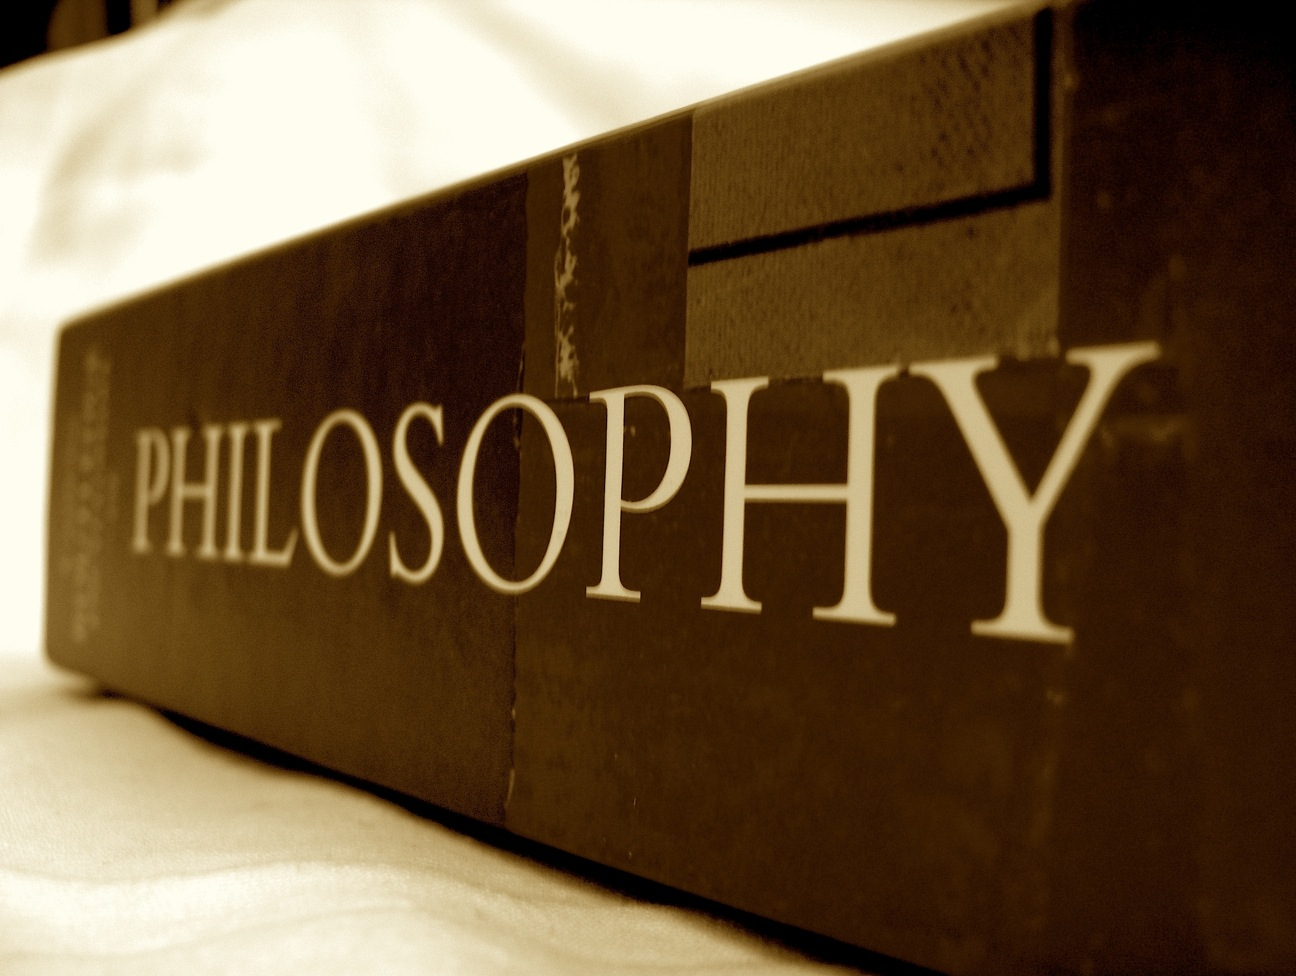 the importance of philosophy to lead future constituents in virtue Eudaimonia (greek: εὐδαιμονία [eu̯dai̯moníaː]), sometimes anglicized as  eudaemonia or  it is a central concept in aristotelian ethics and political  philosophy, along with the terms aretē, most often  aristotle takes virtue and its  exercise to be the most important constituent in eudaimonia but acknowledges  also the.